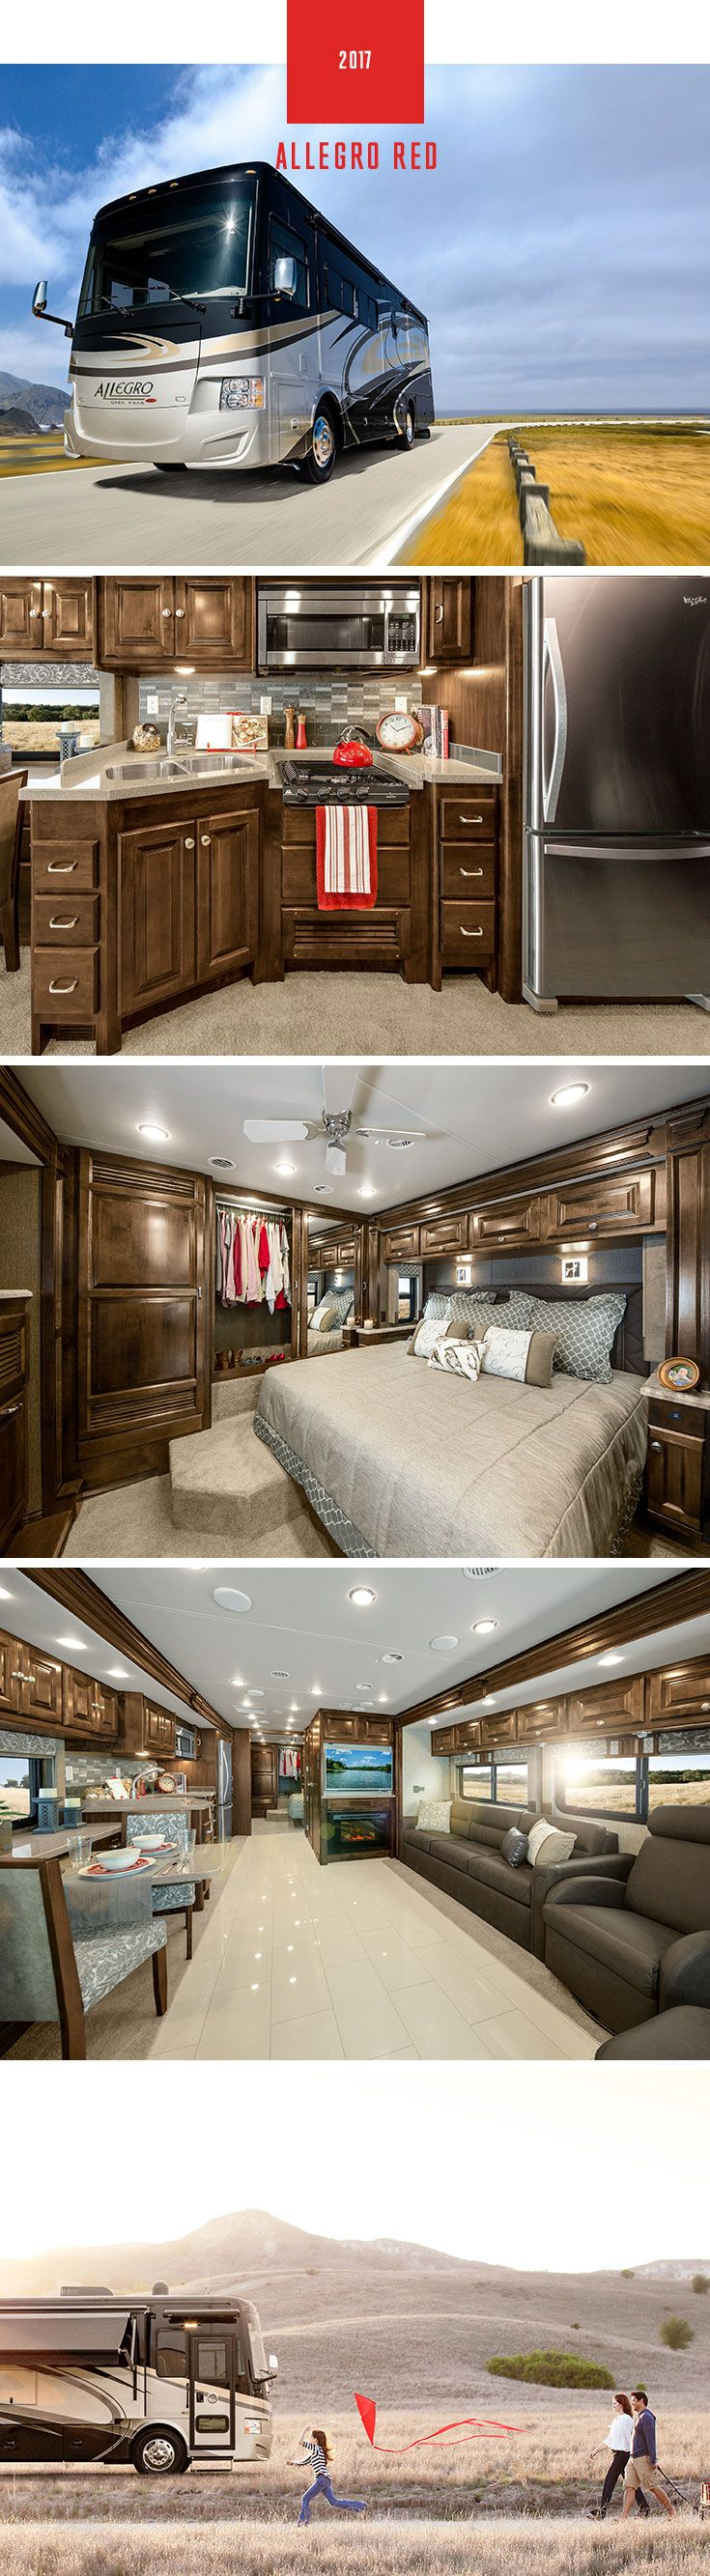 Where can you find an all-in-one, affordable, luxury coach? A Tiffin Motorhome. Shown: 2017 Allegro RED 33 AA floor plan with Mocha Cabinets & Truffle Interior. Great for first-time RV travelers looking for a fuel efficient rear engine diesel coach.